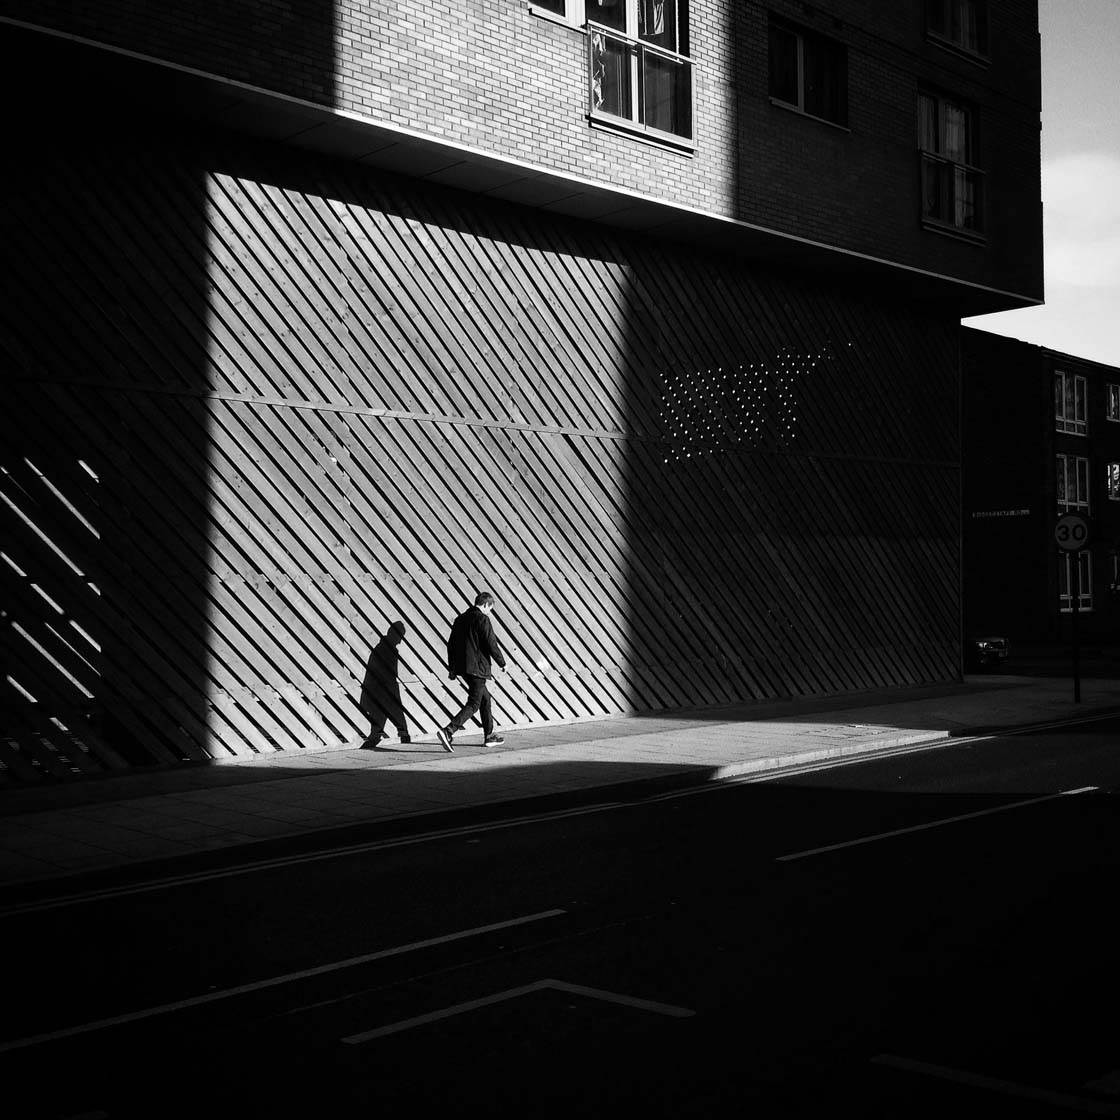 iPhone Street Photography Confidence 24 no script